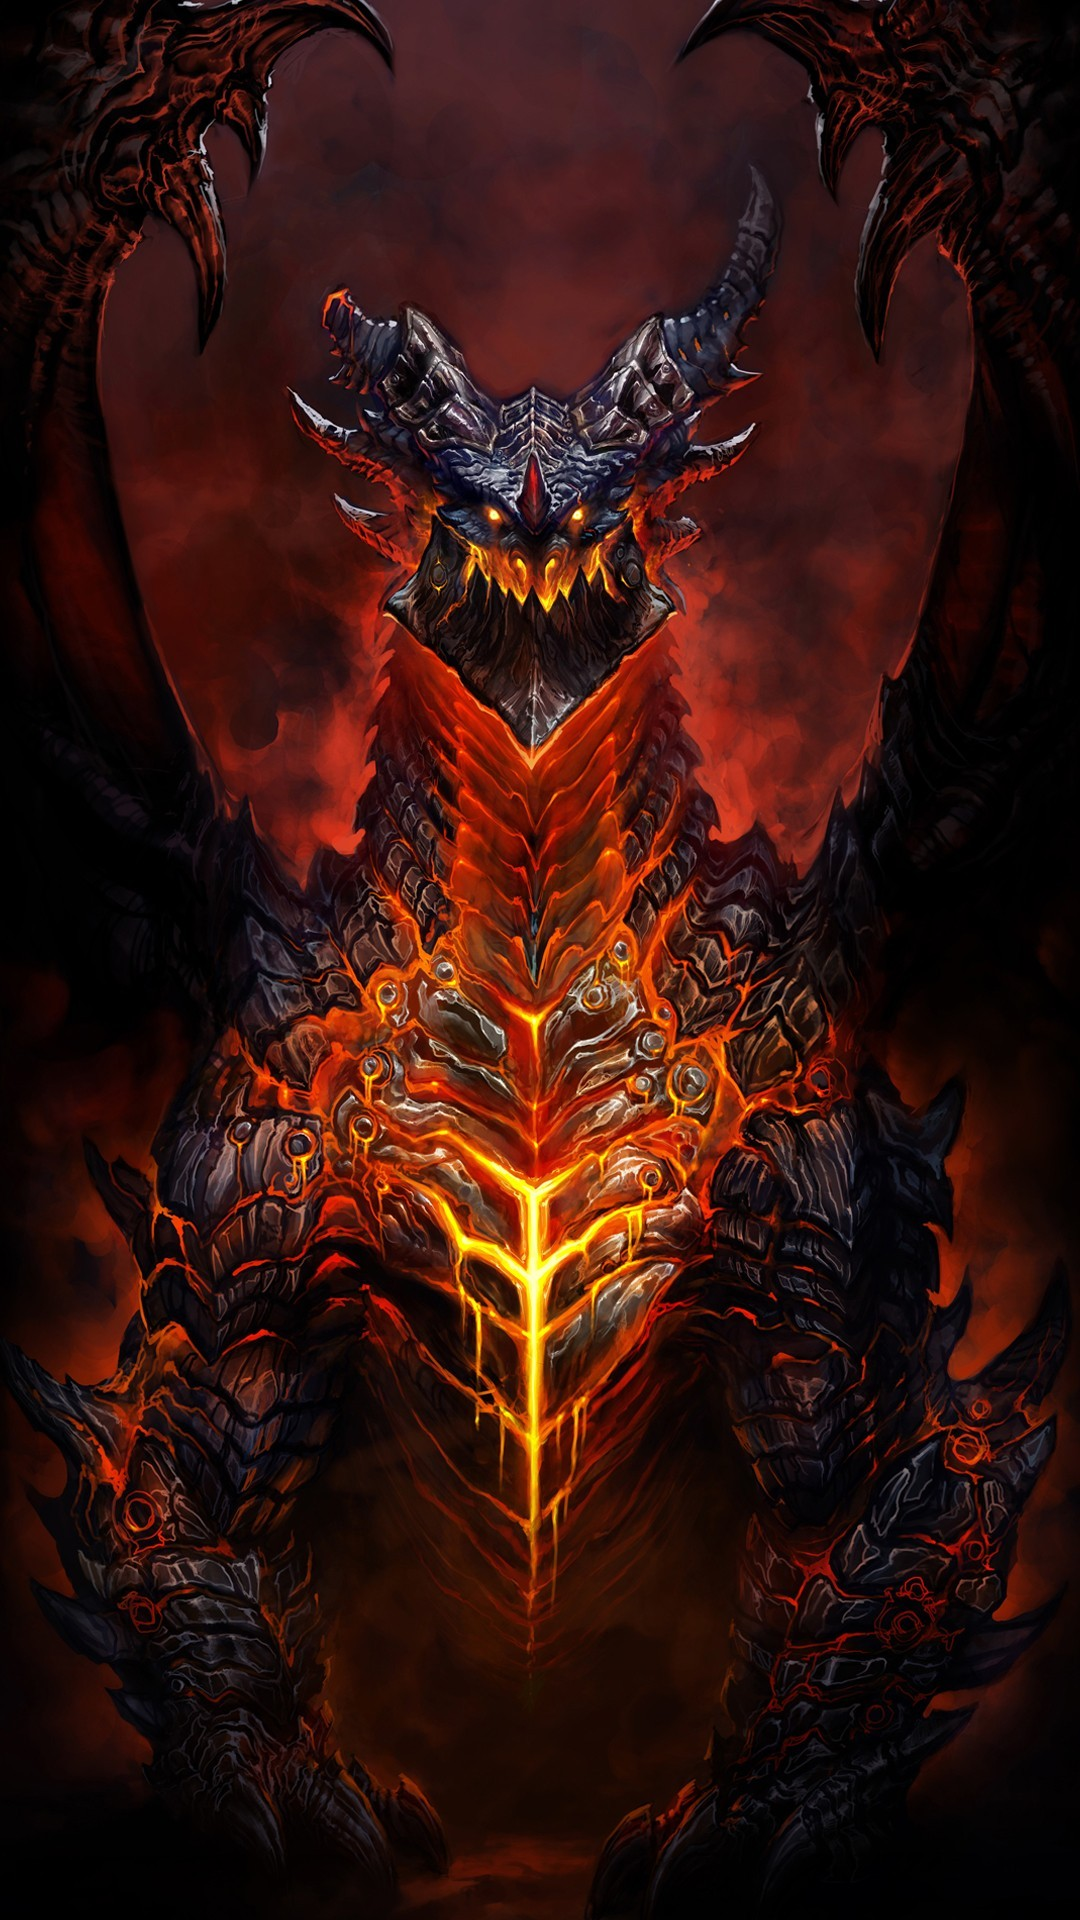 Deathwing world warcraft htc one 1080x1920 wallpaper - World of warcraft images ...